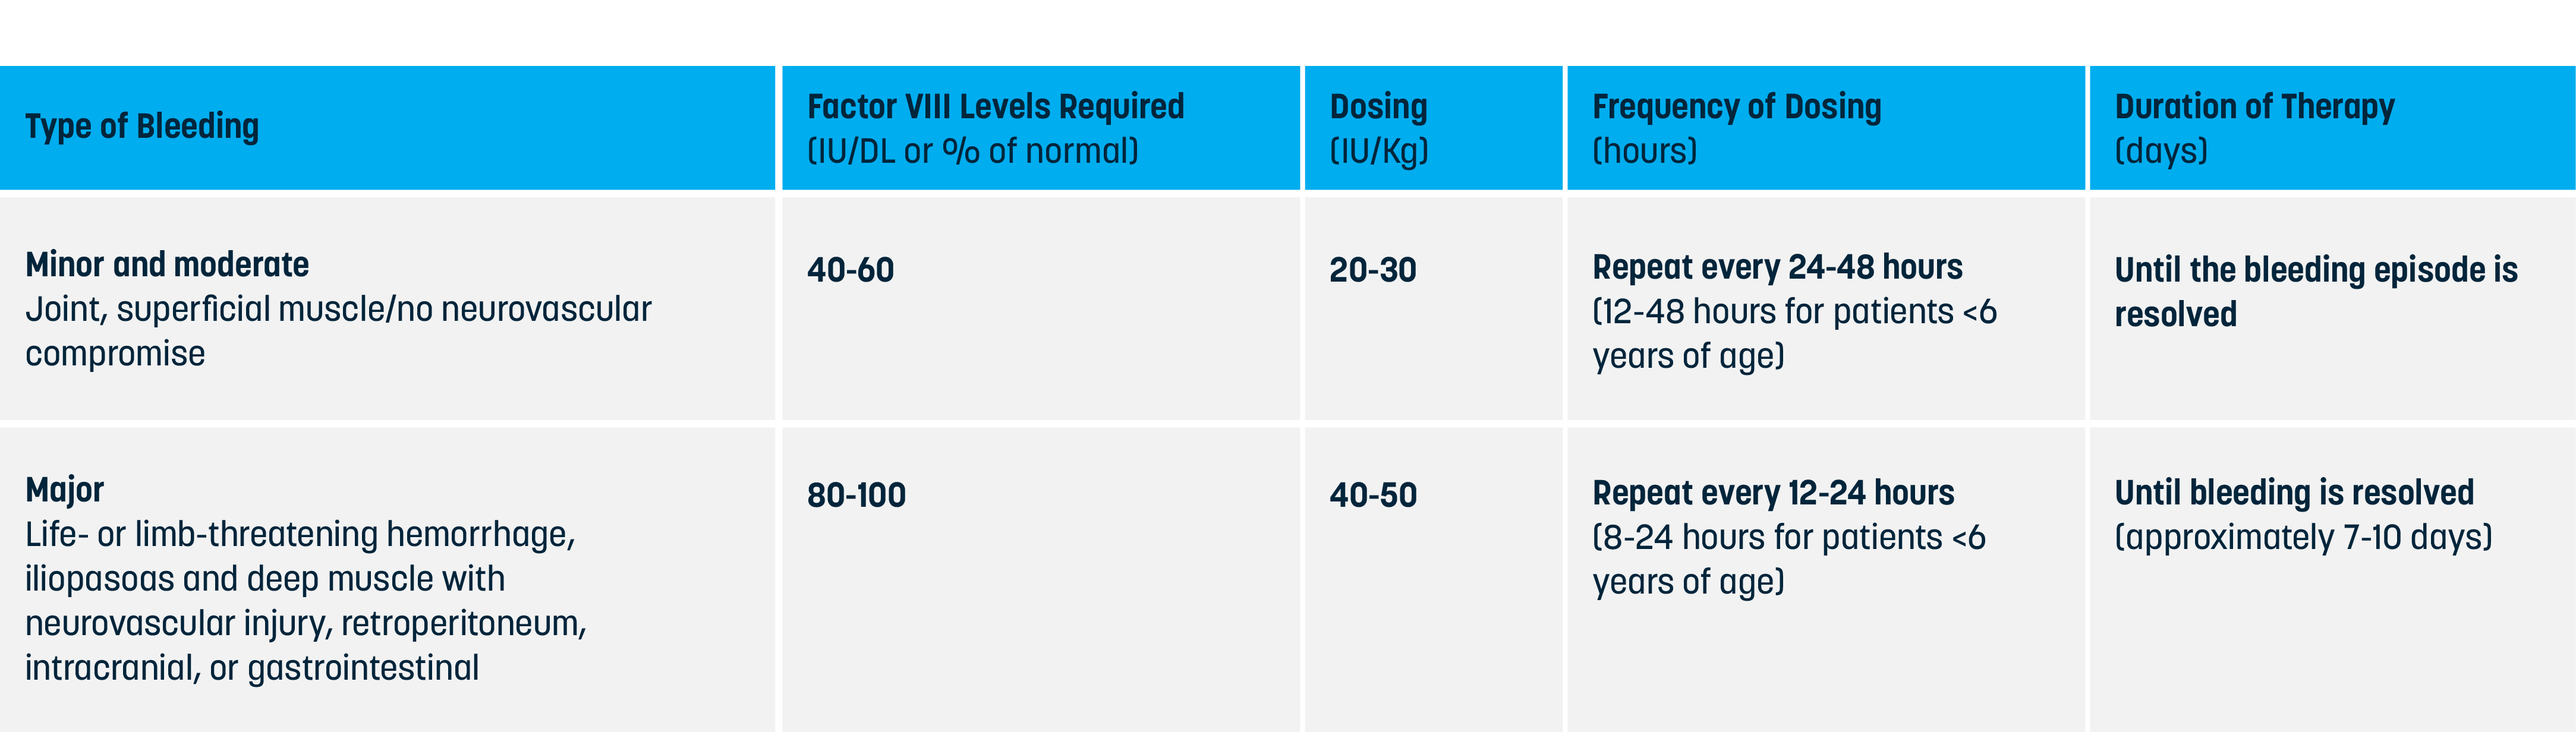 Chart detailing Dosing for Control of Bleeding Episodes